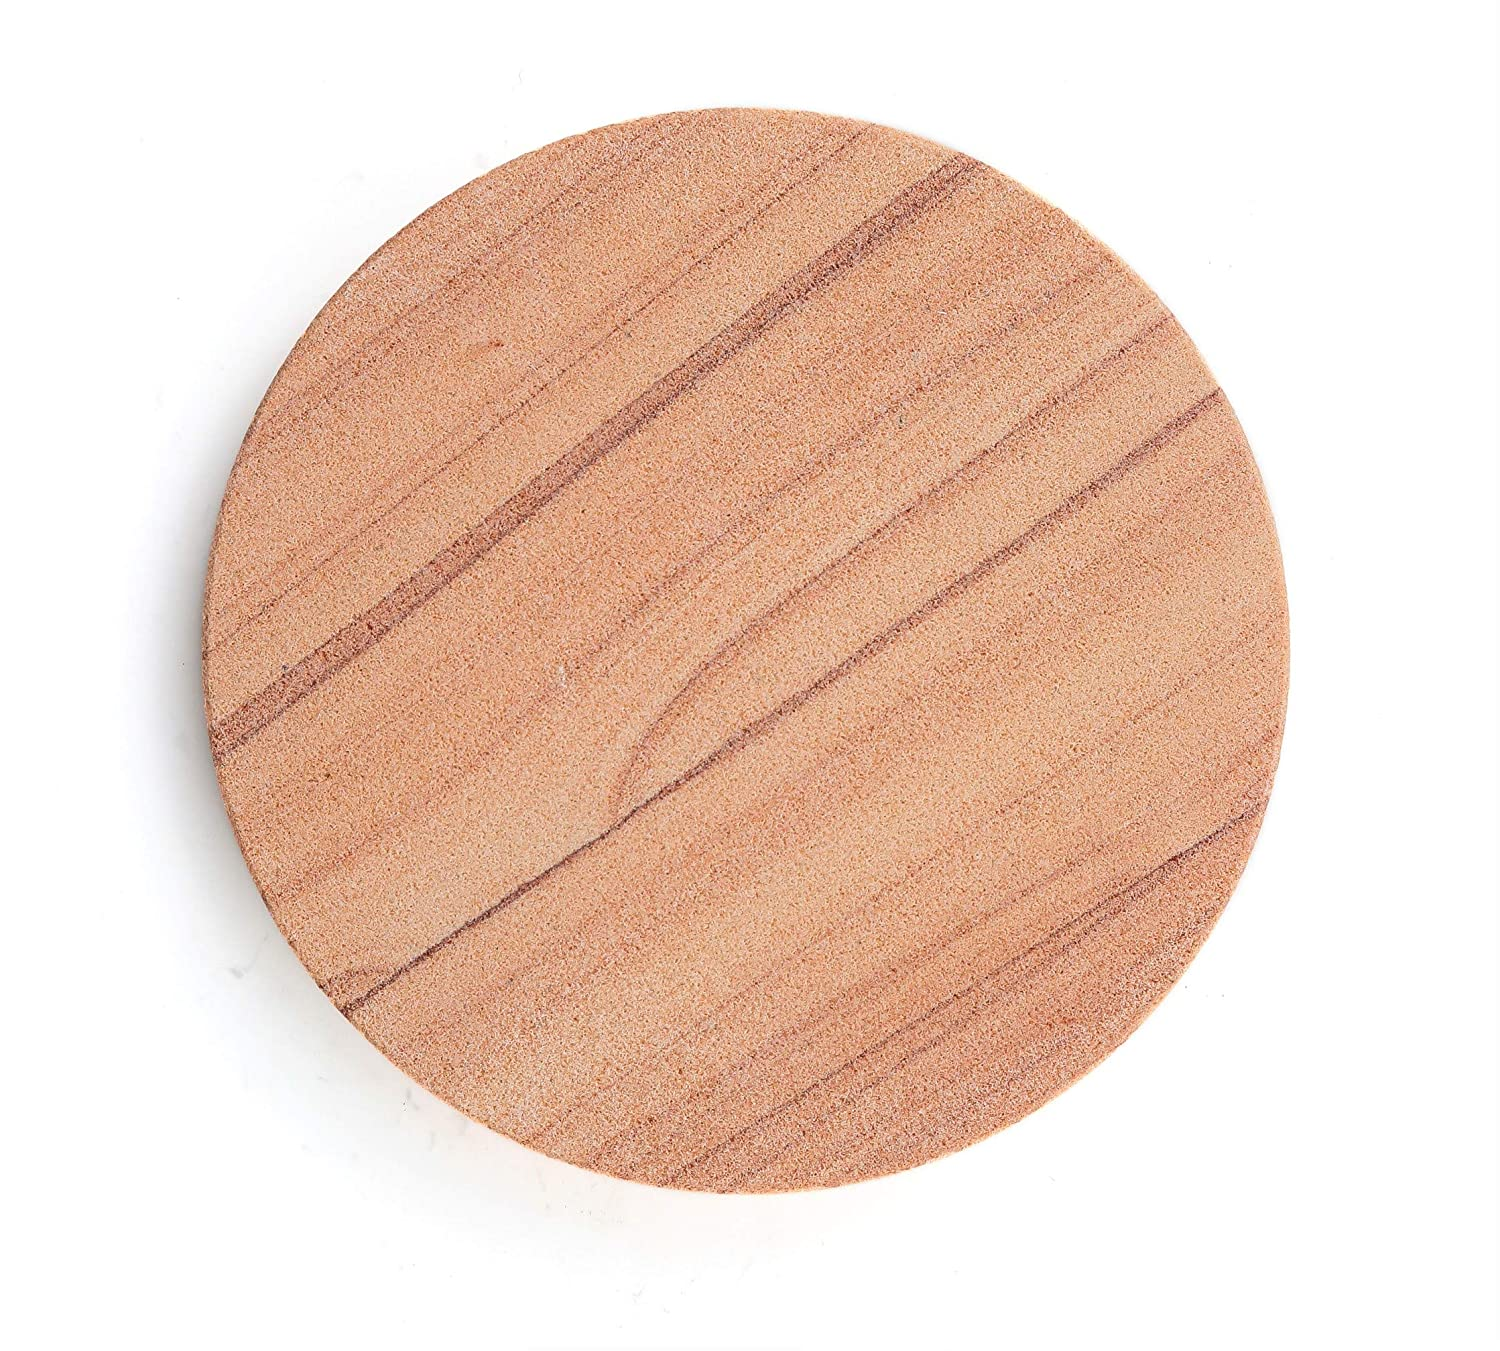 Thirstystone Brand-Cinnabar, Multicolor All Natural Sandstone-Durable Stone with Varying Patterns, Every Coaster is an Original, 4 inches